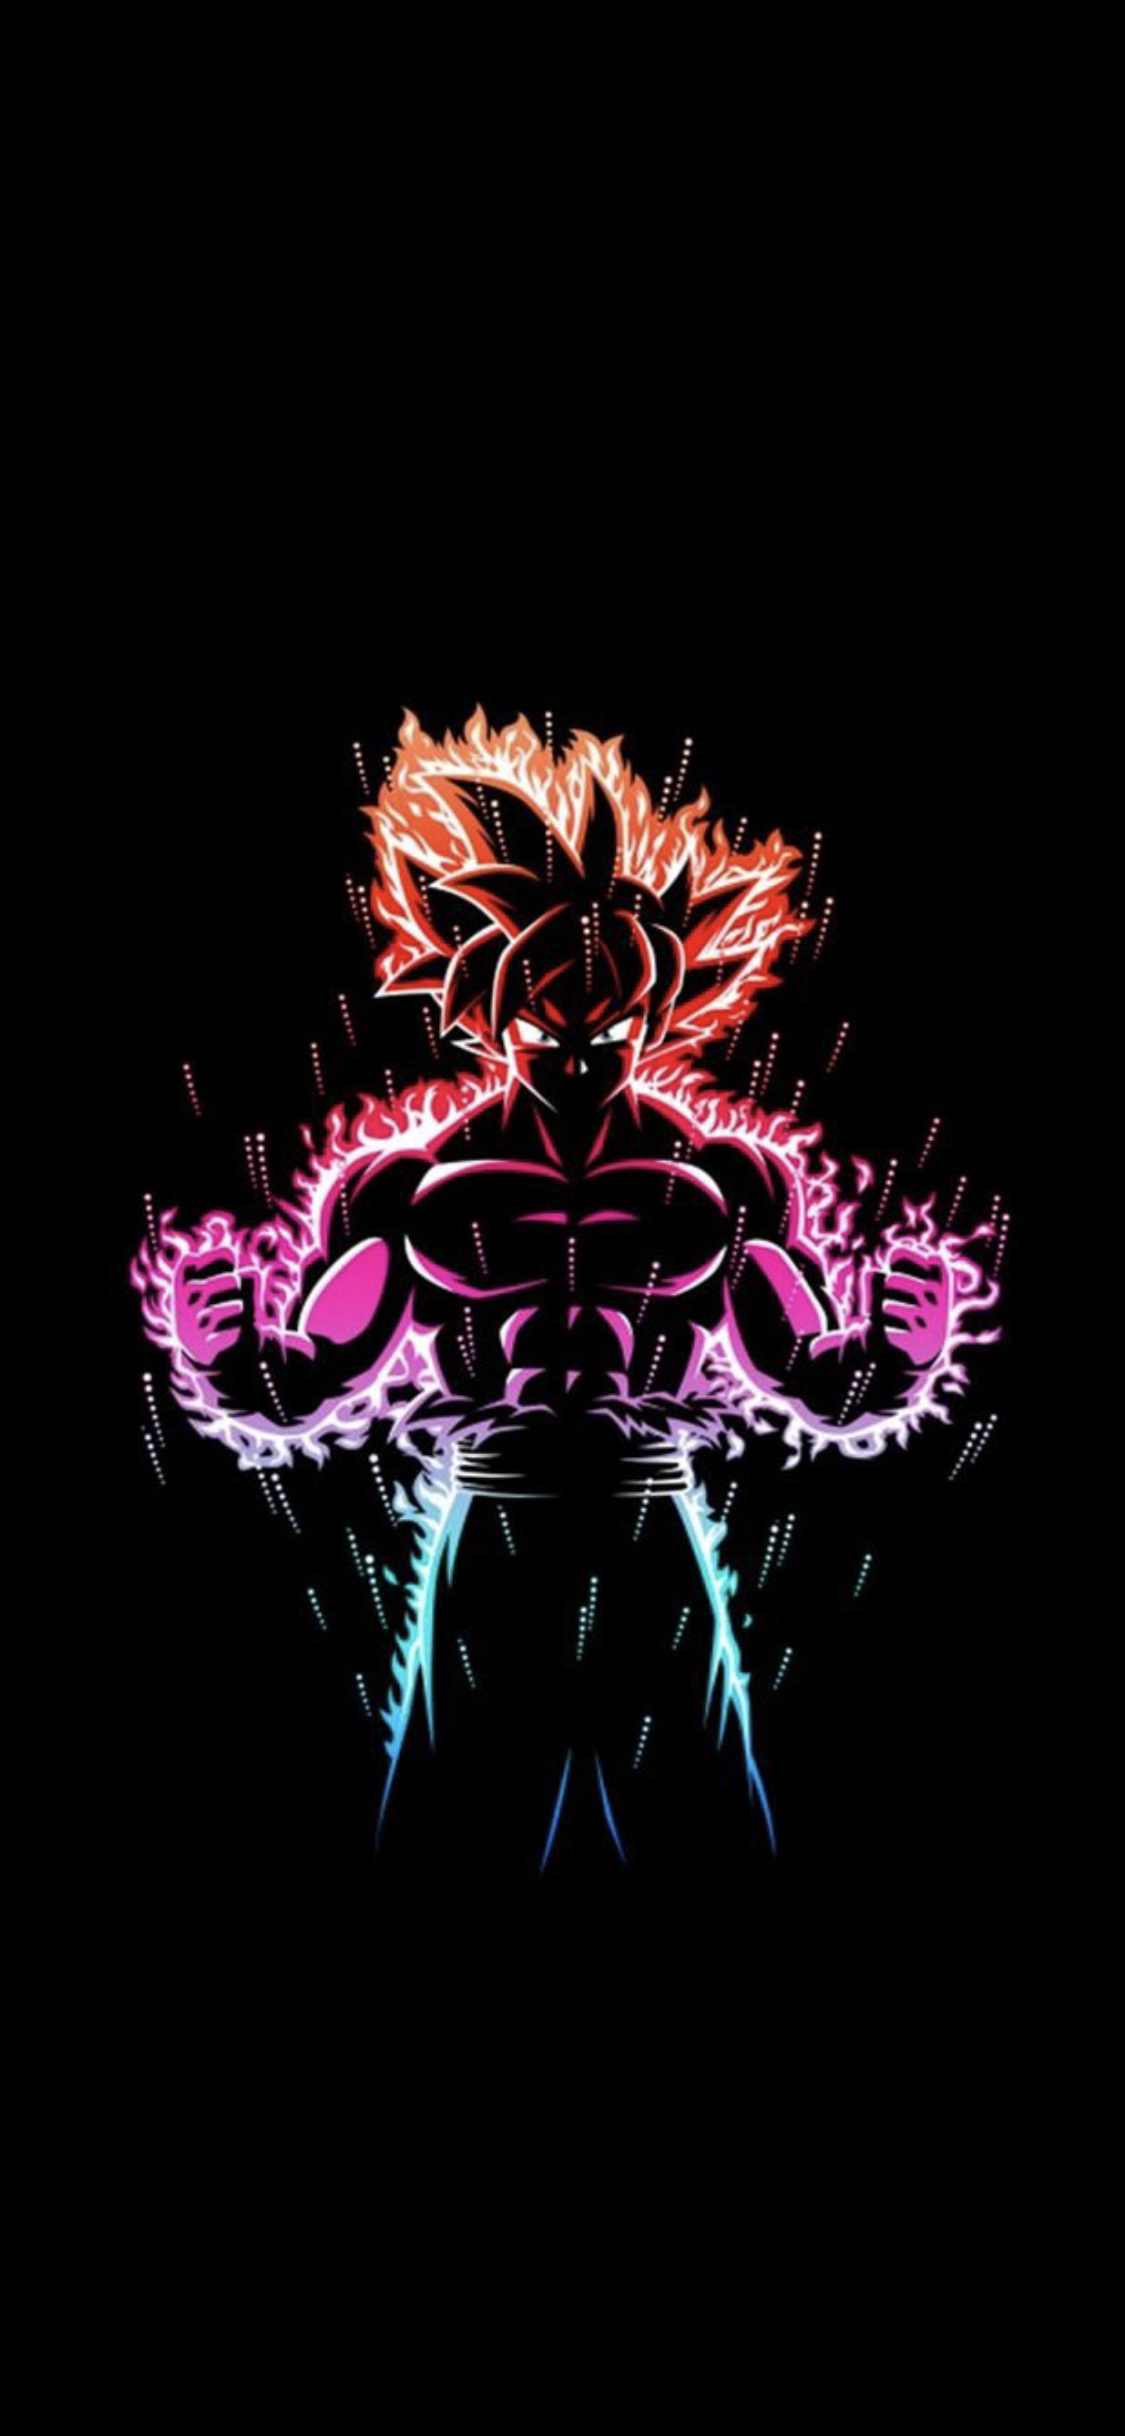 Wallpaper Iphone X Fond D Ecran Dragon Fond Ecran Dbz Et